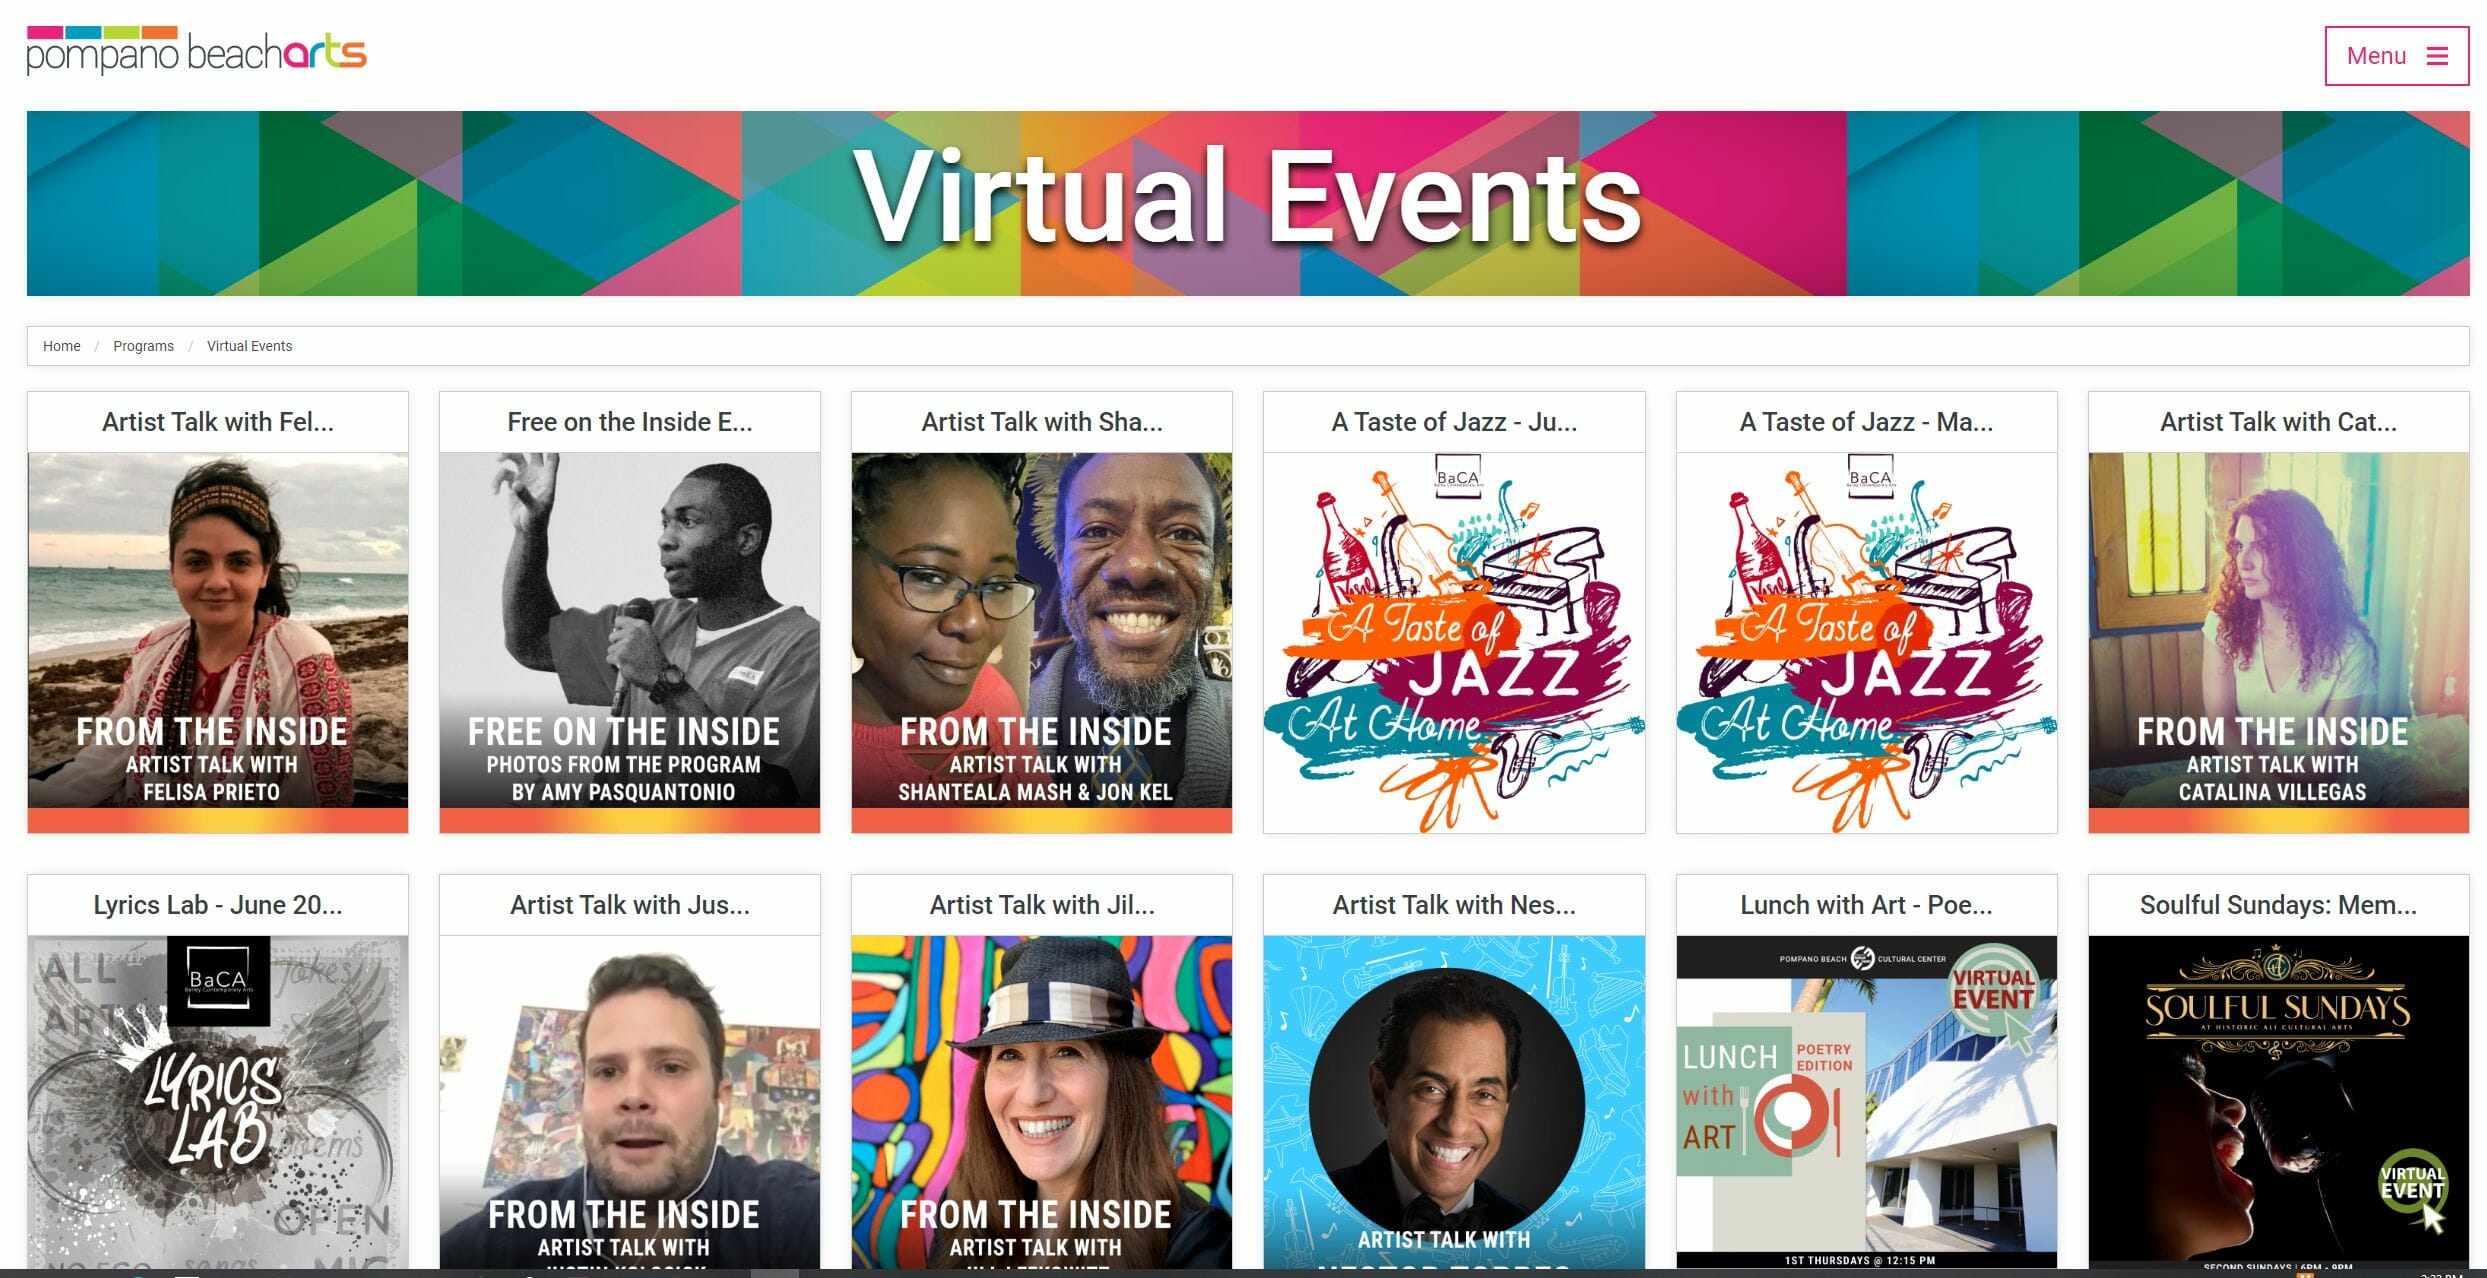 Pompano Beach Arts Website Offers Virtual Performances, Workshops and Conversations